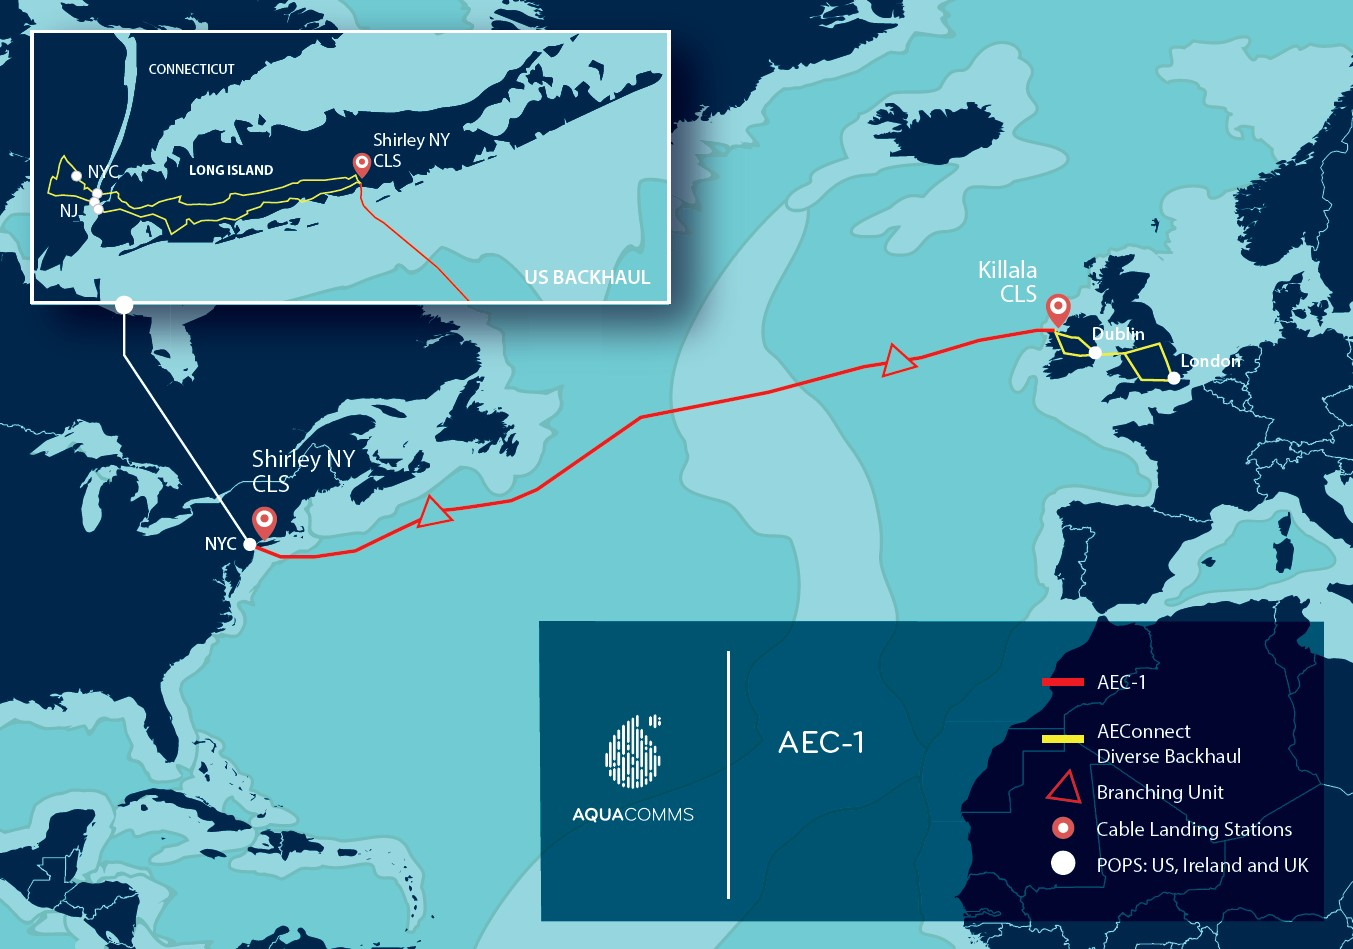 aec1-network-map-for-post-009